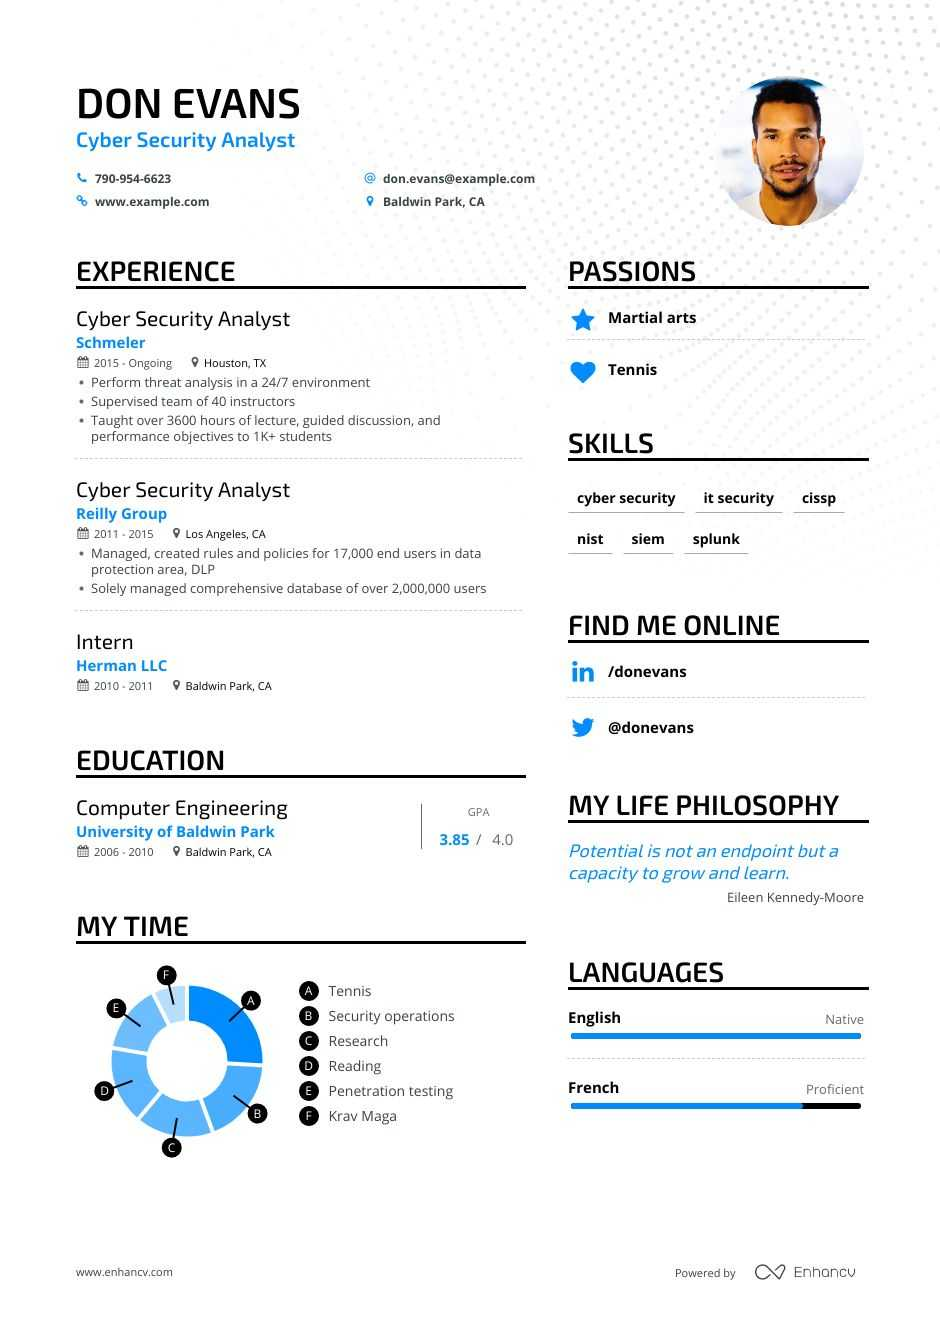 cyber security analyst resume examples guide pro tips enhancv sample for copy of format Resume Sample Resume For Cyber Security